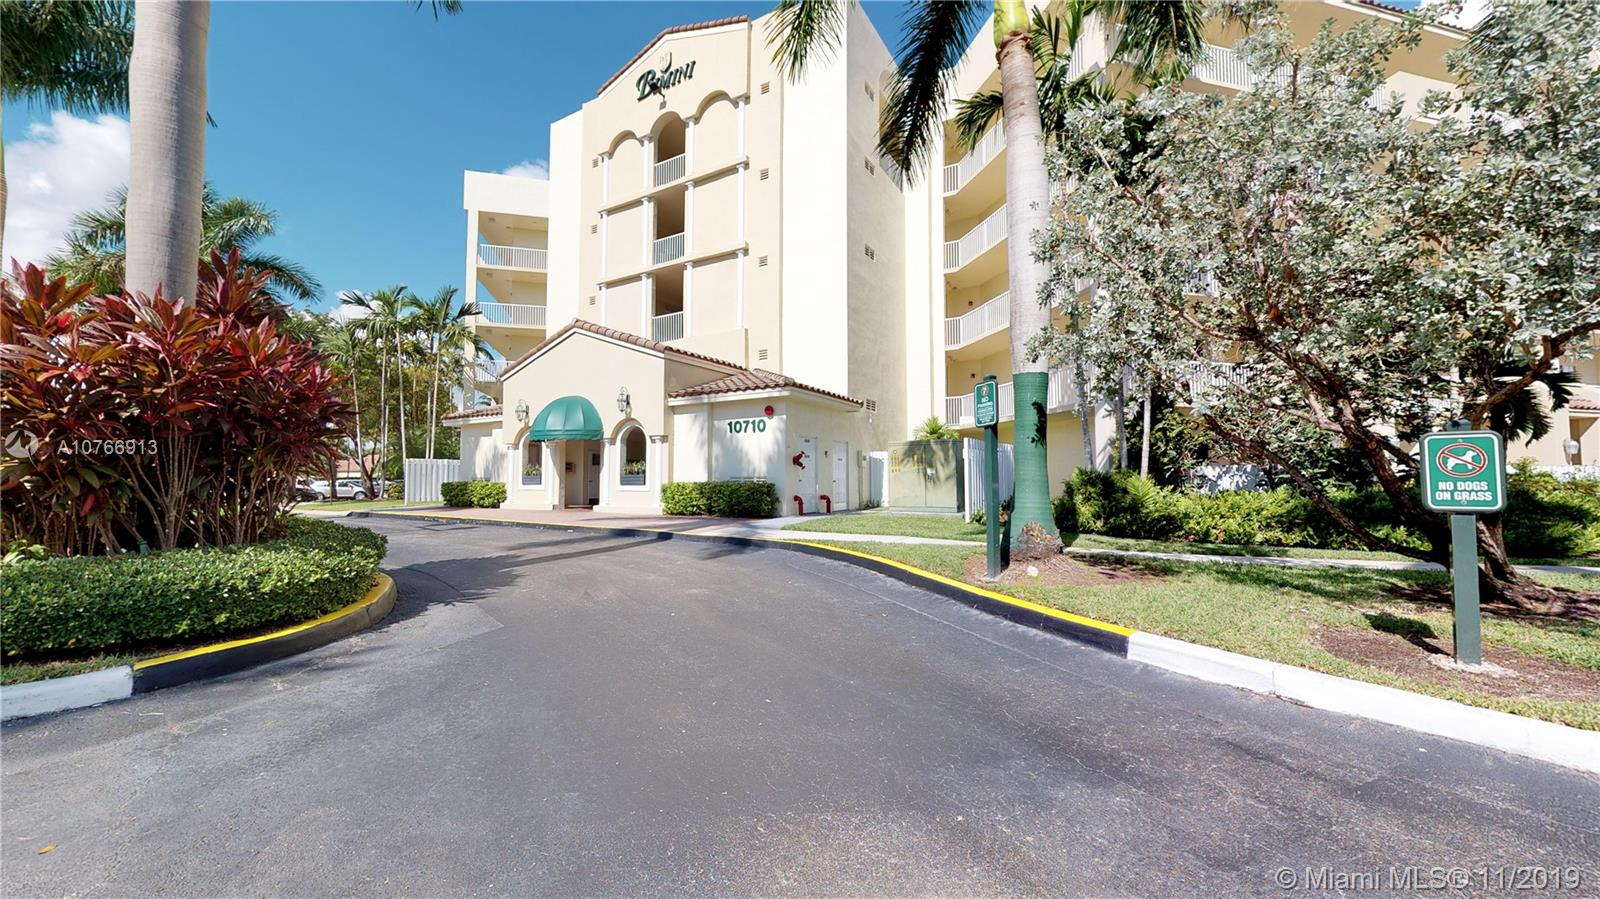 10710 NW 66th St, Doral in Miami-dade County County, FL 33178 Home for Sale